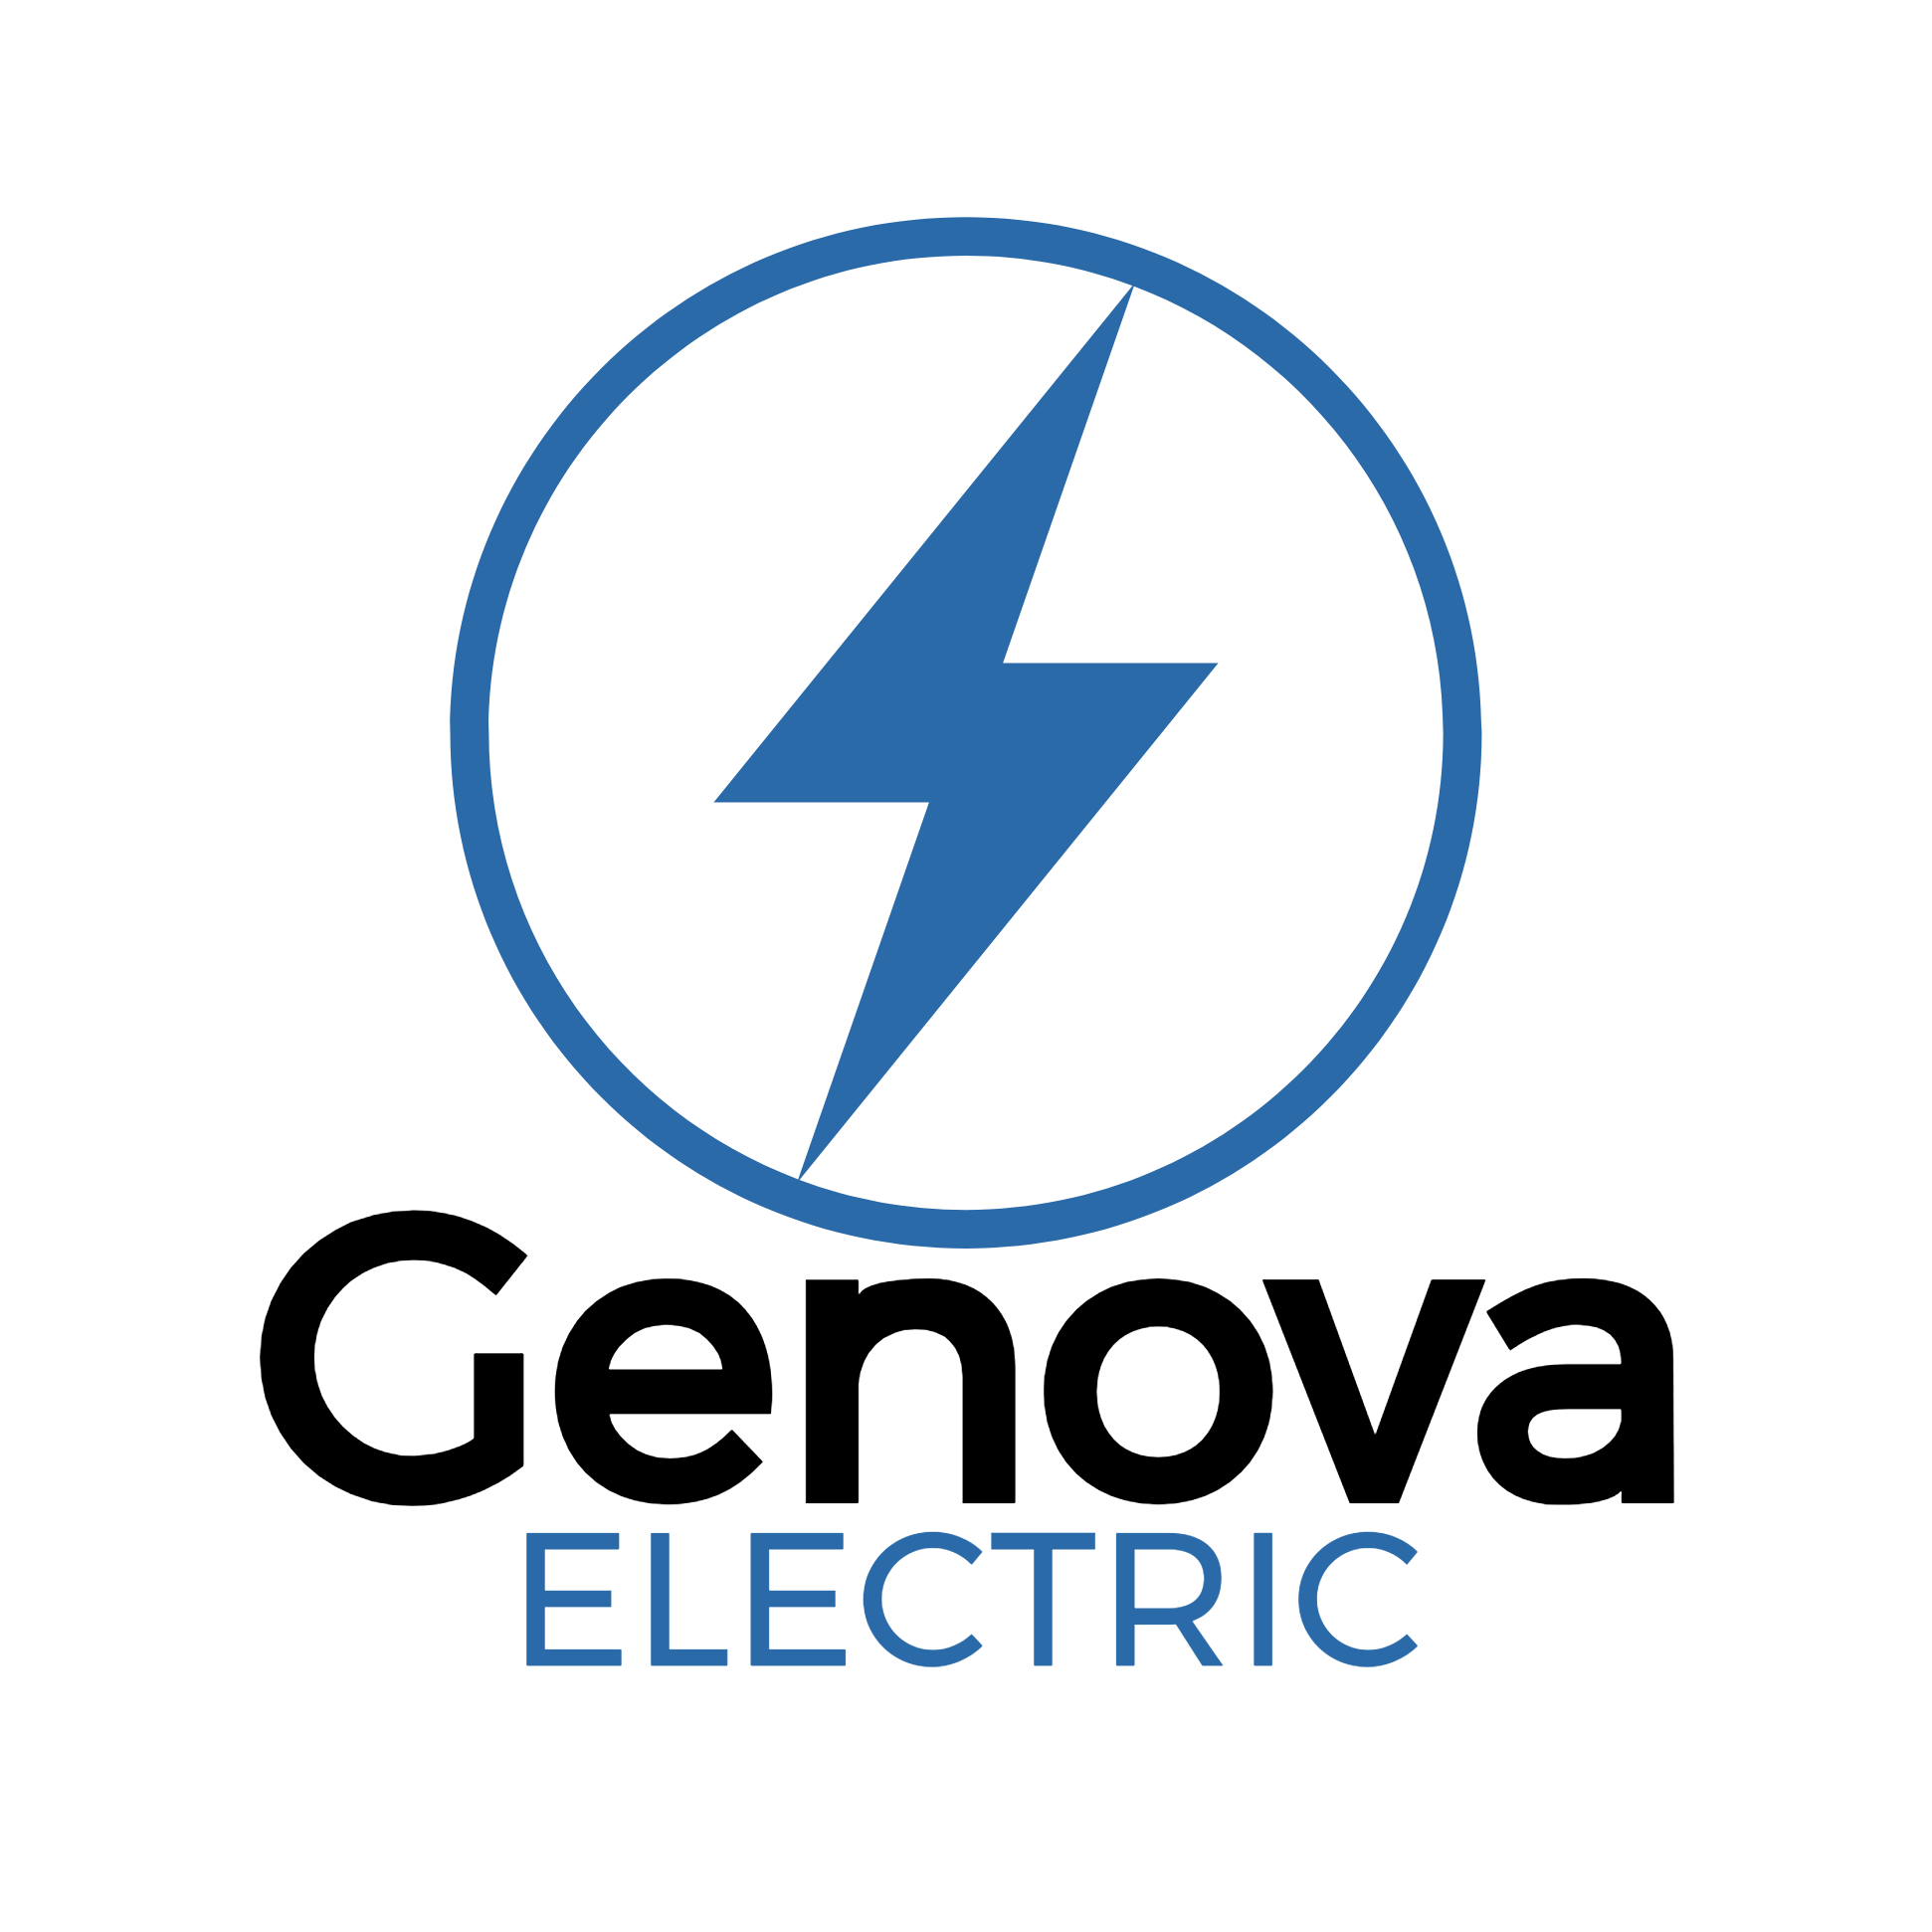 Genova Electric